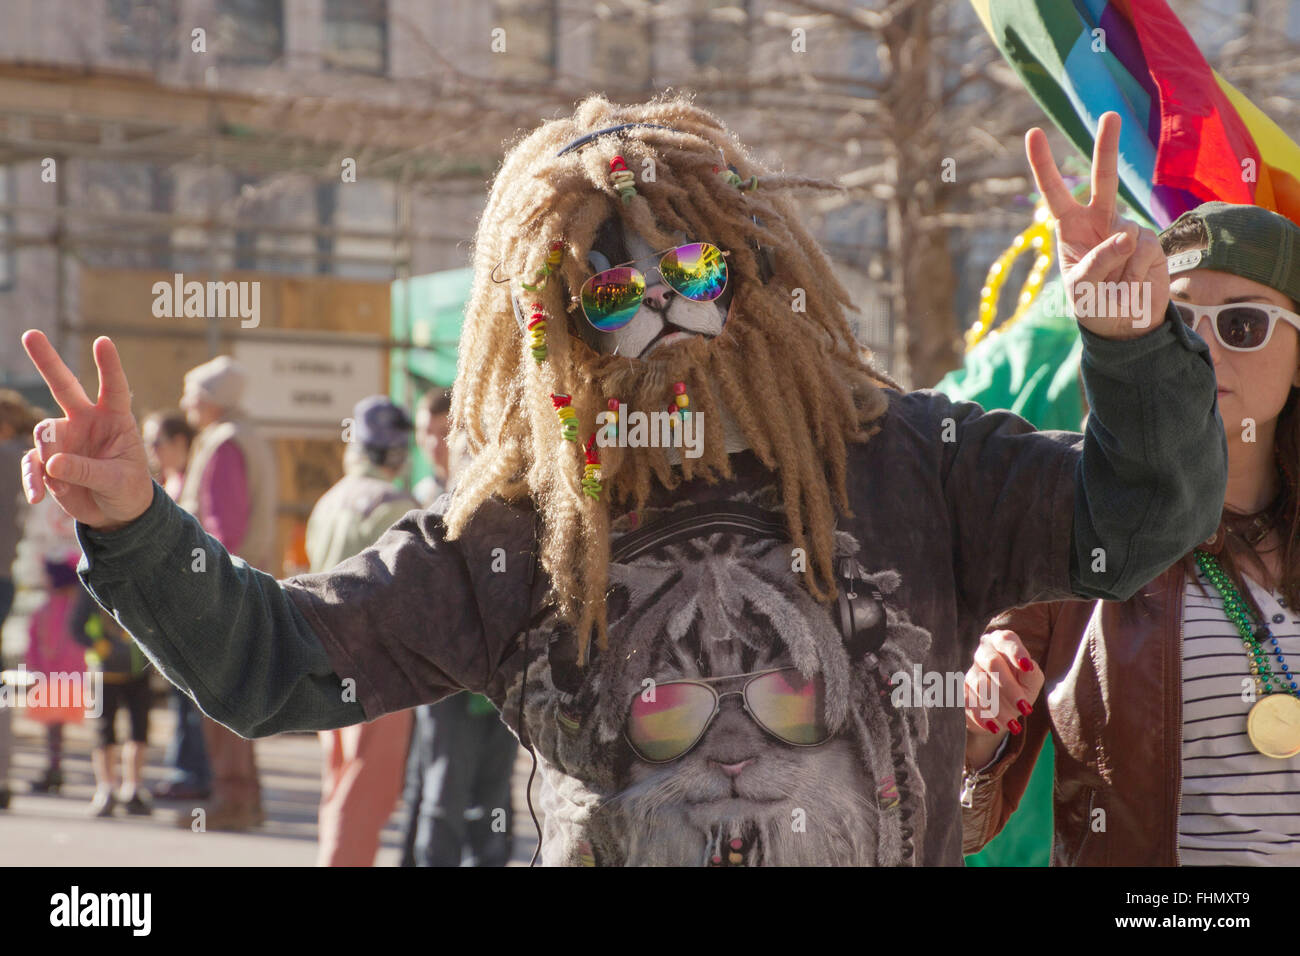 Asheville, North Carolina, USA - February 7, 2016: A hairy wookie like beast in a t-shirt with a picture of itself - Stock Image